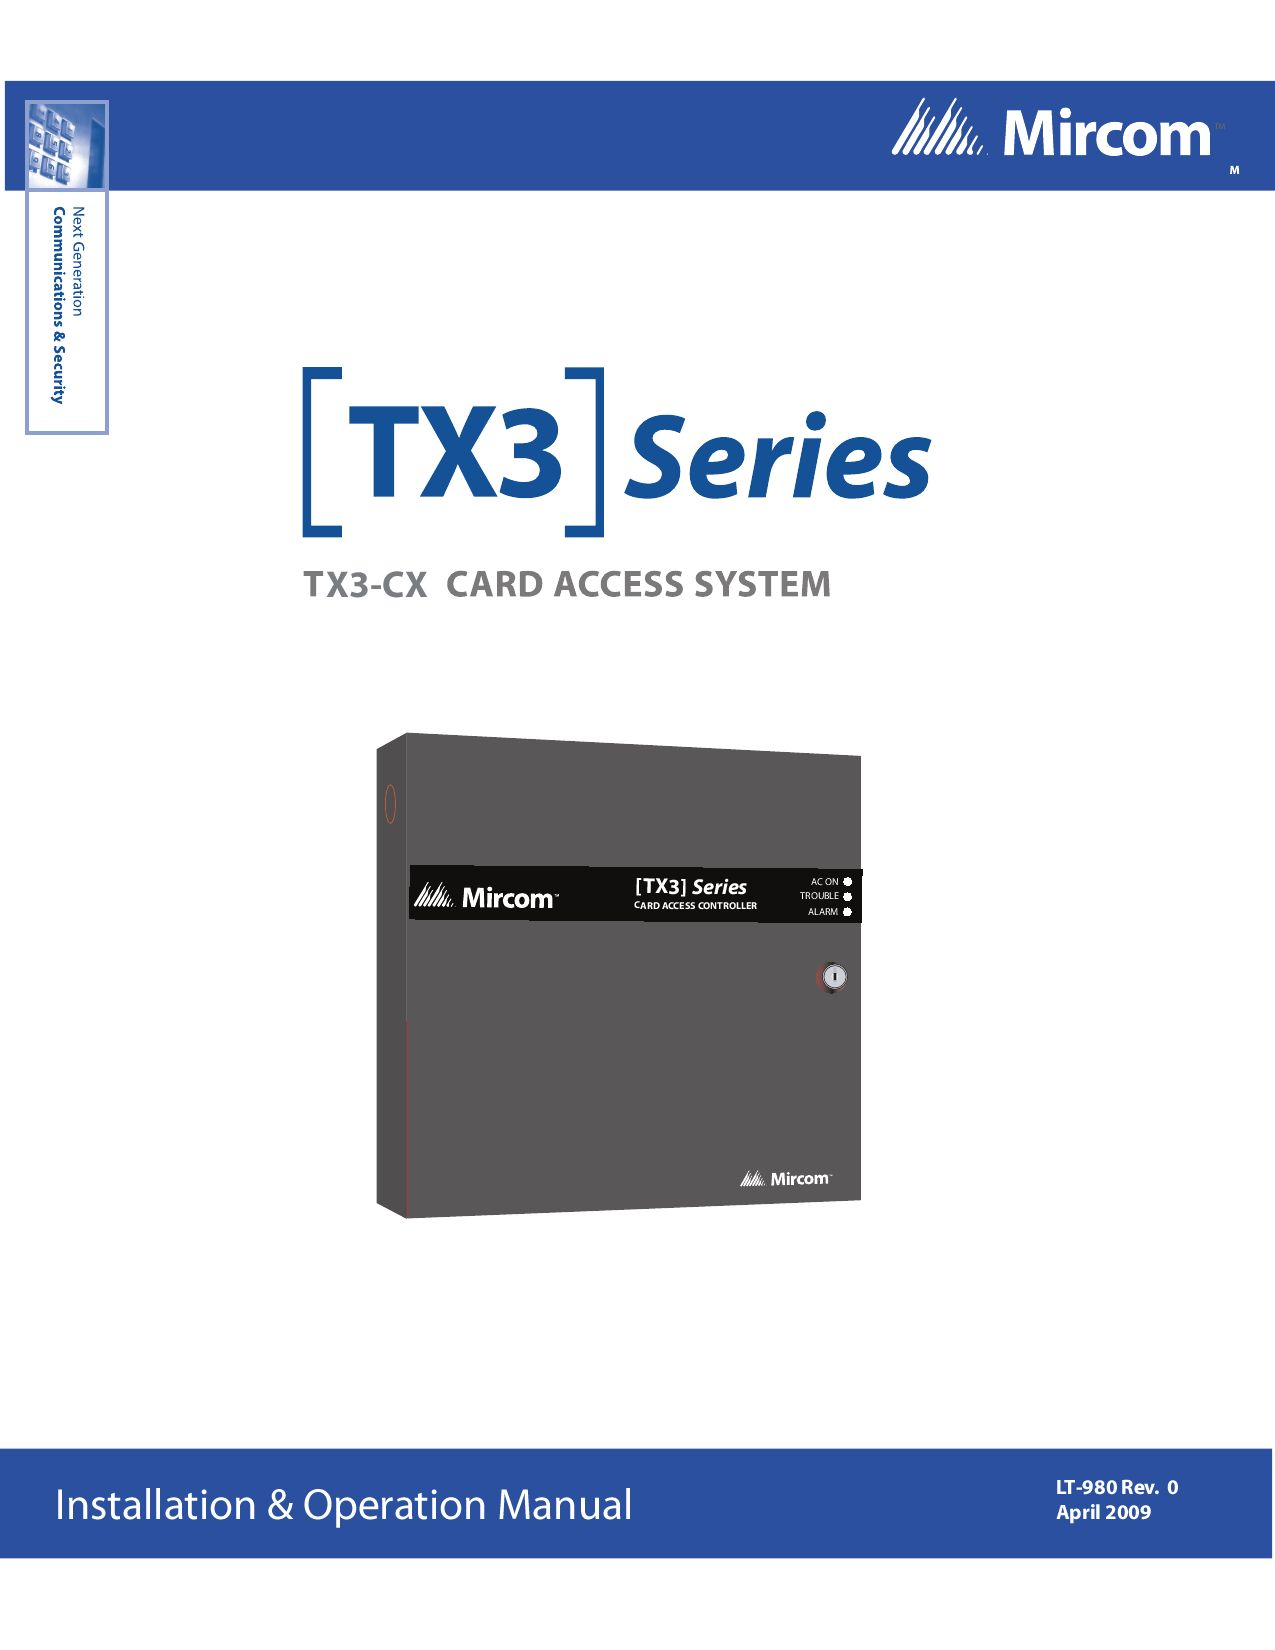 Access Instr lt-980 tx3-cx card access instr rev 0mircom group of